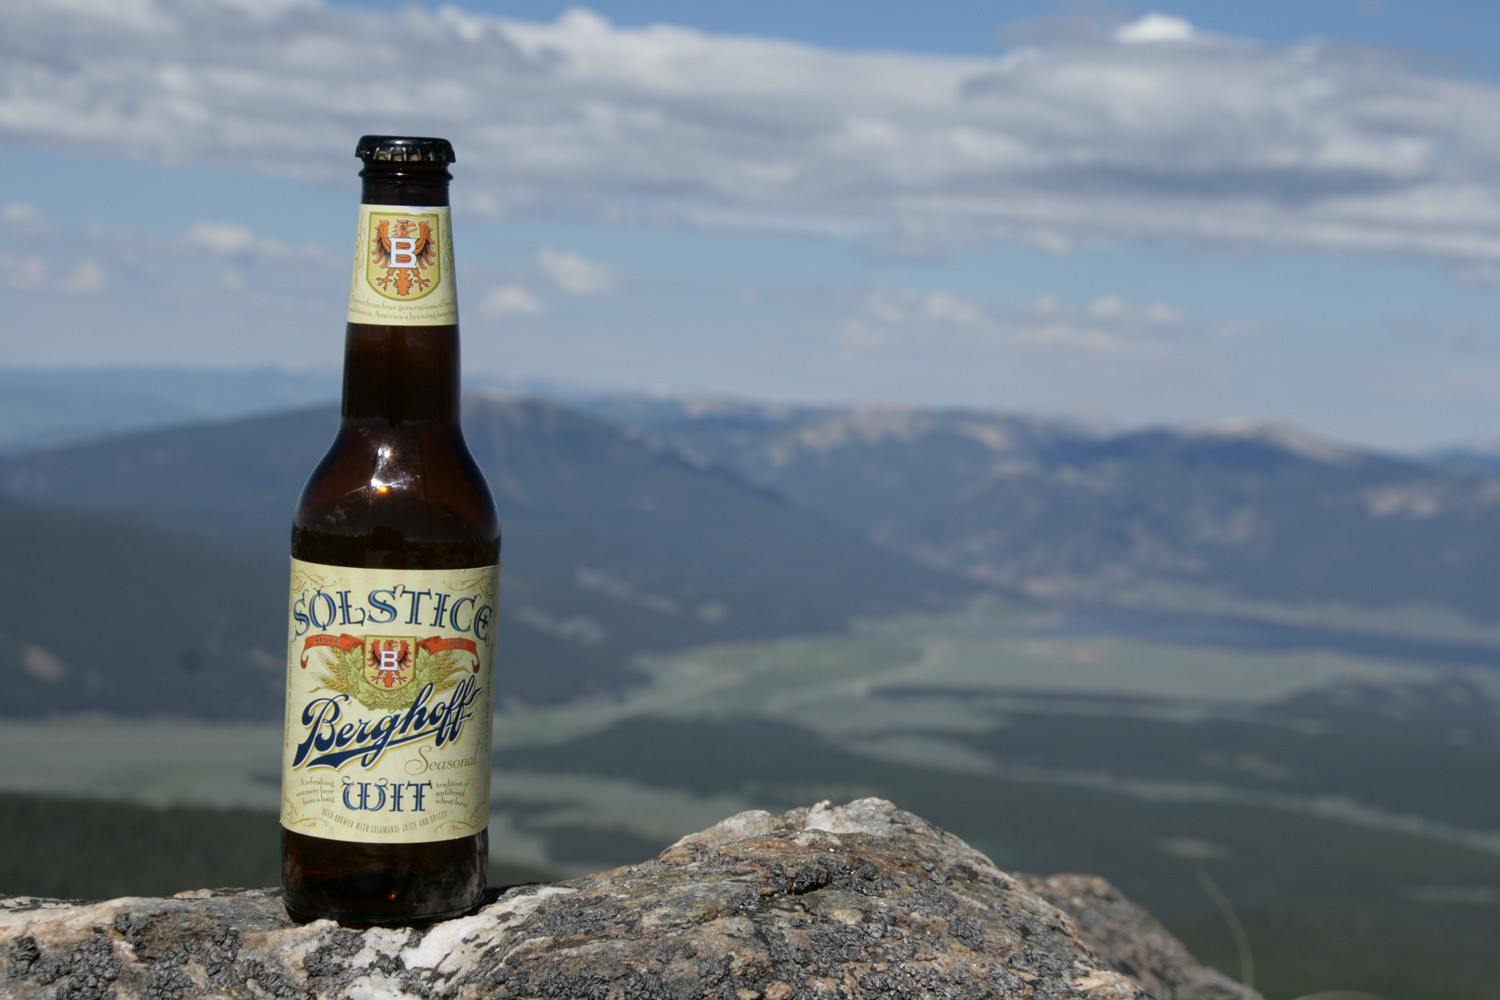 Be on top of the world with Berghoff's Solstice Wit summer beer.